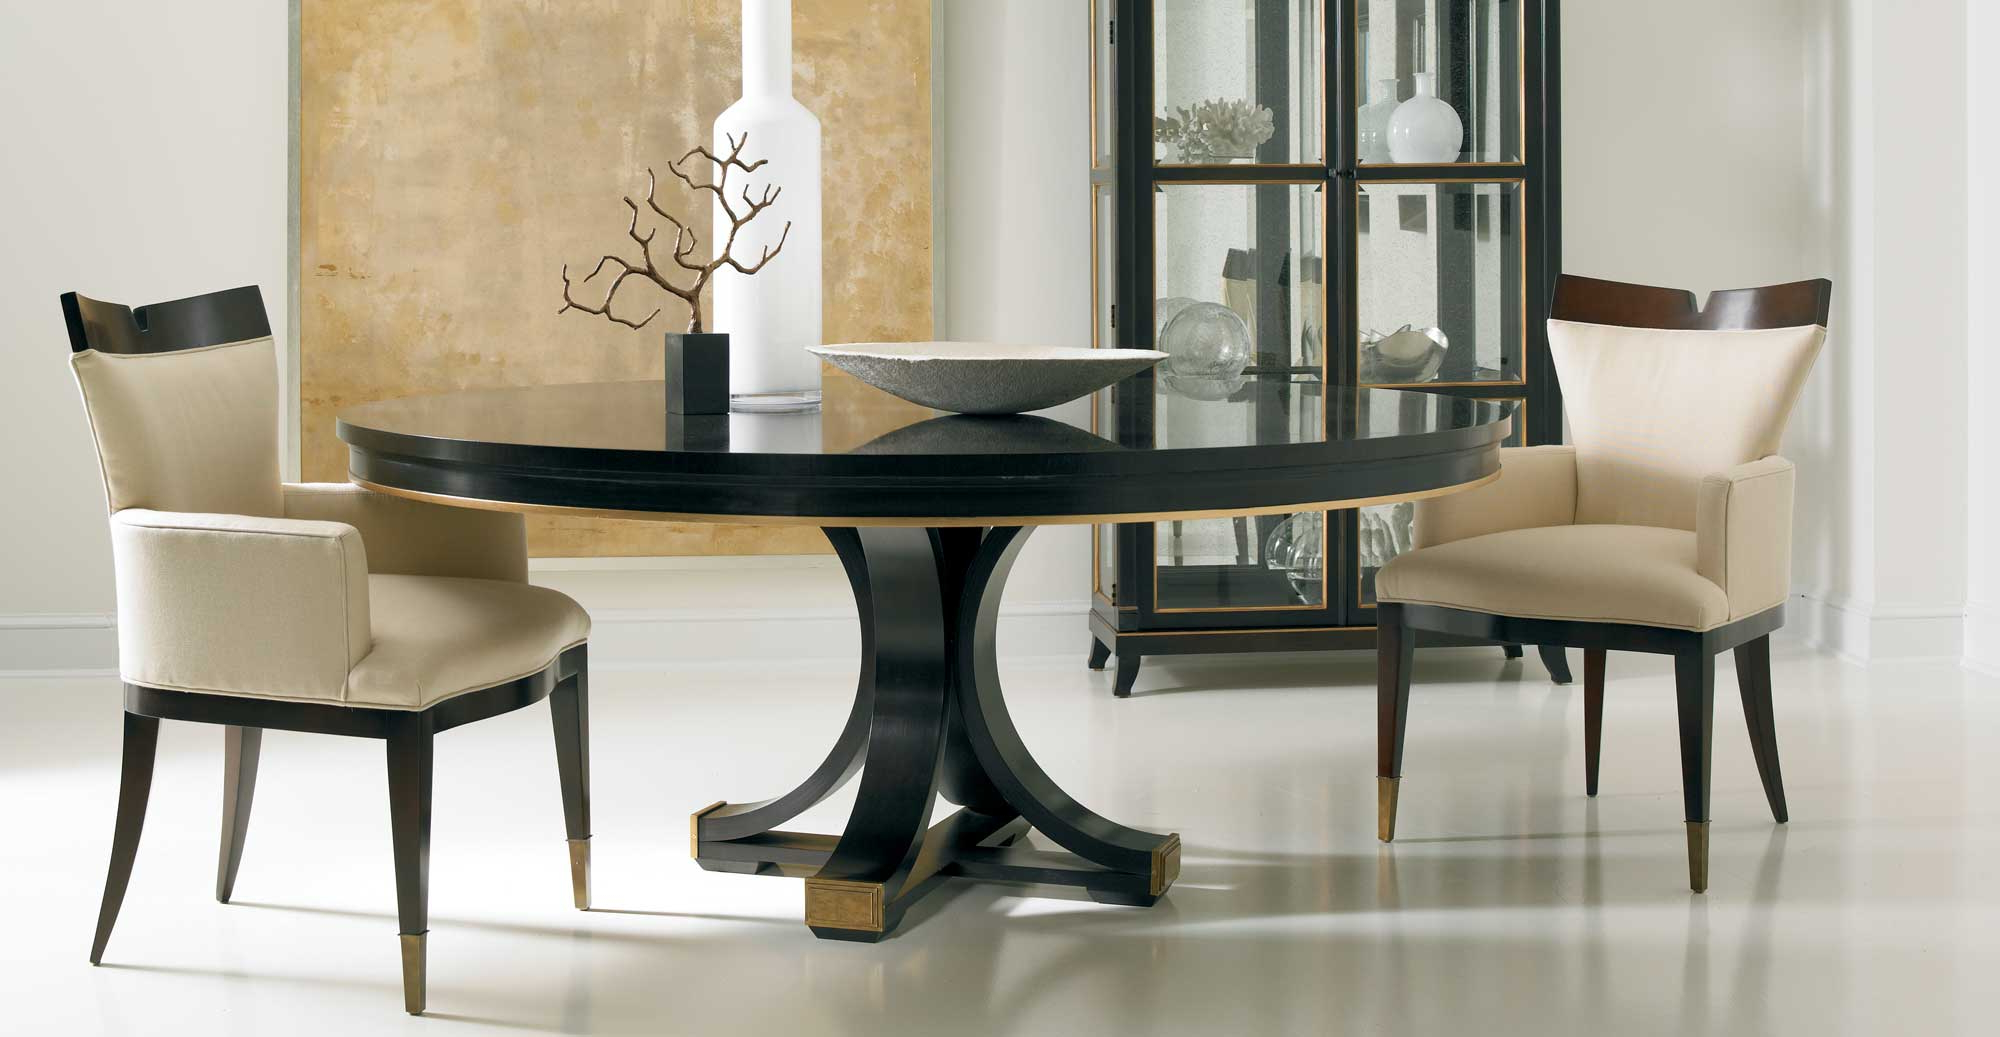 Popular Custom Dining Table Works – Hickory White – Where Custom Is Within Walnut And Antique White Finish Contemporary Country Dining Tables (View 23 of 30)